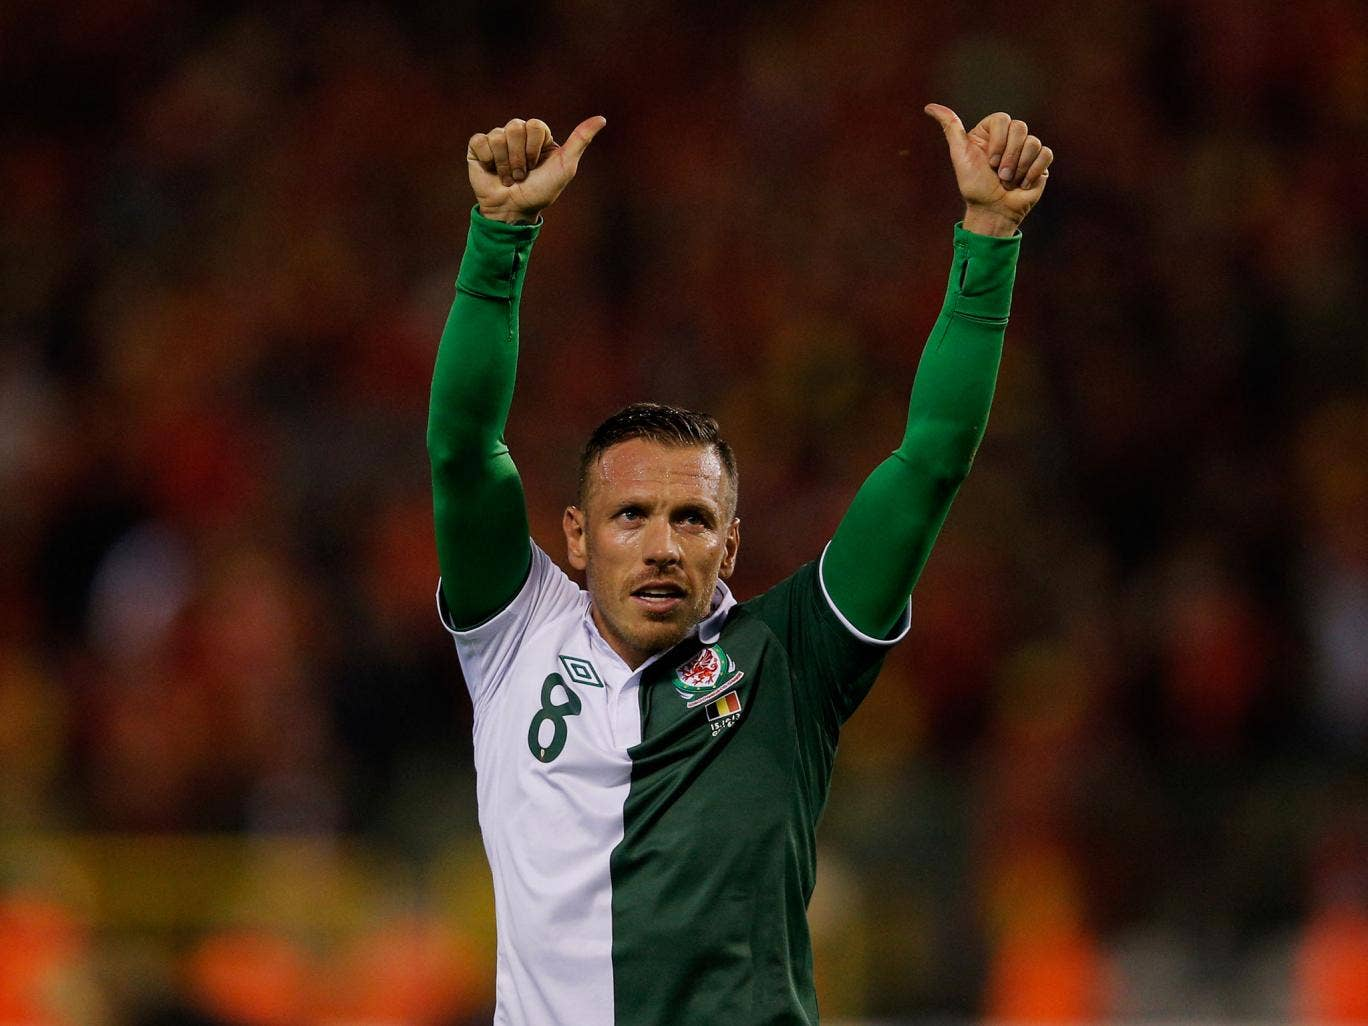 Craig Bellamy waves goodbye to the Wales fans as he retires from international football after their 1-1 draw with Belgium